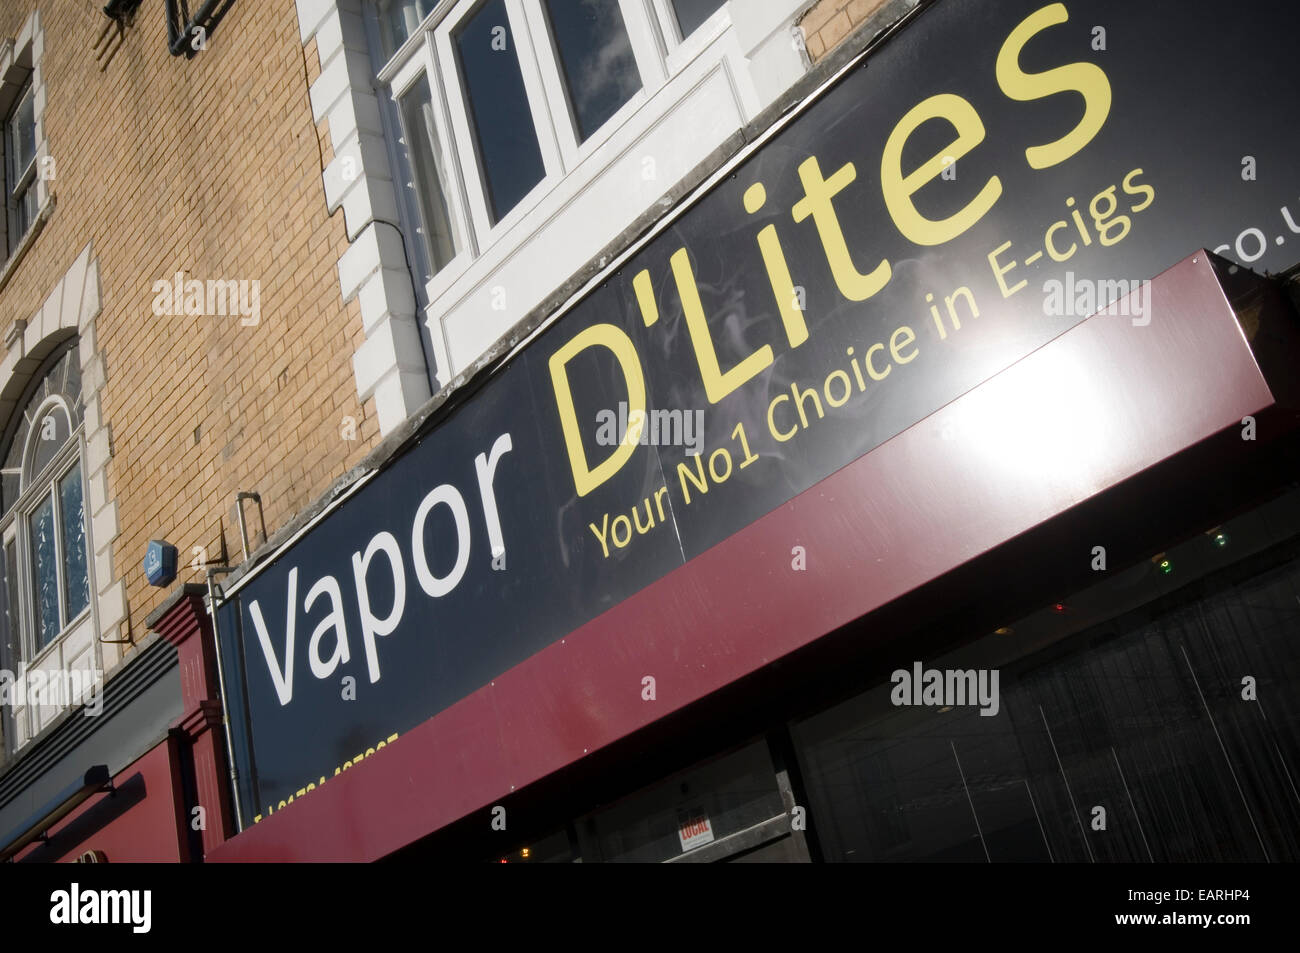 e cigarette cigarettes shop shops vaping vapor smoke smoking - Stock Image